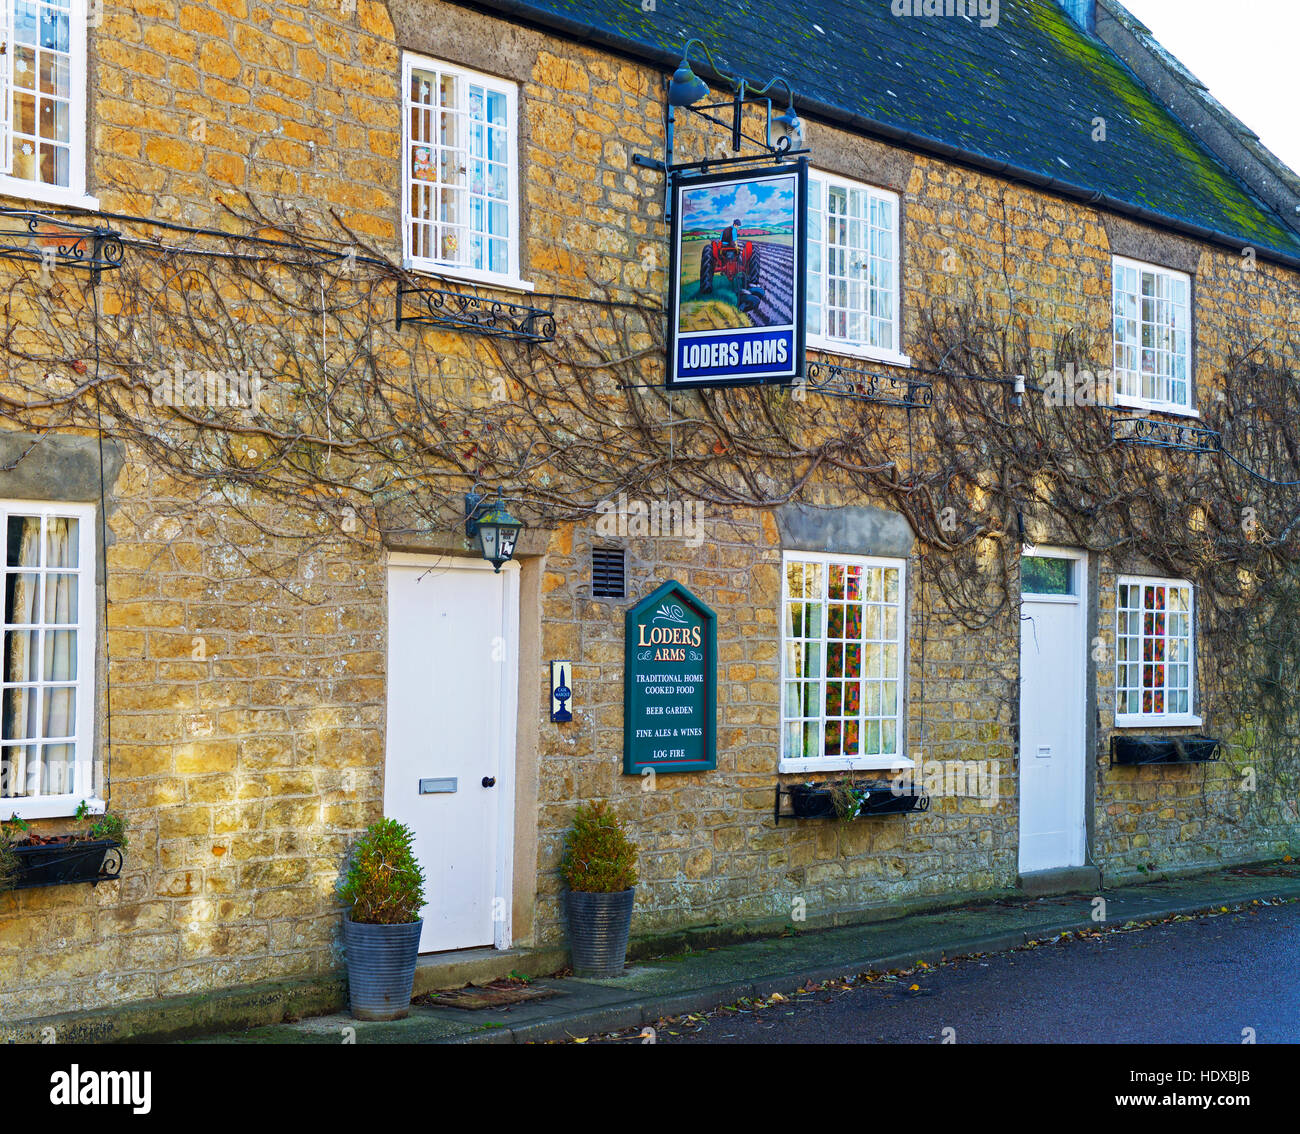 The Loders Arms, the village pub in Loders, Dorset, England UK - Stock Image